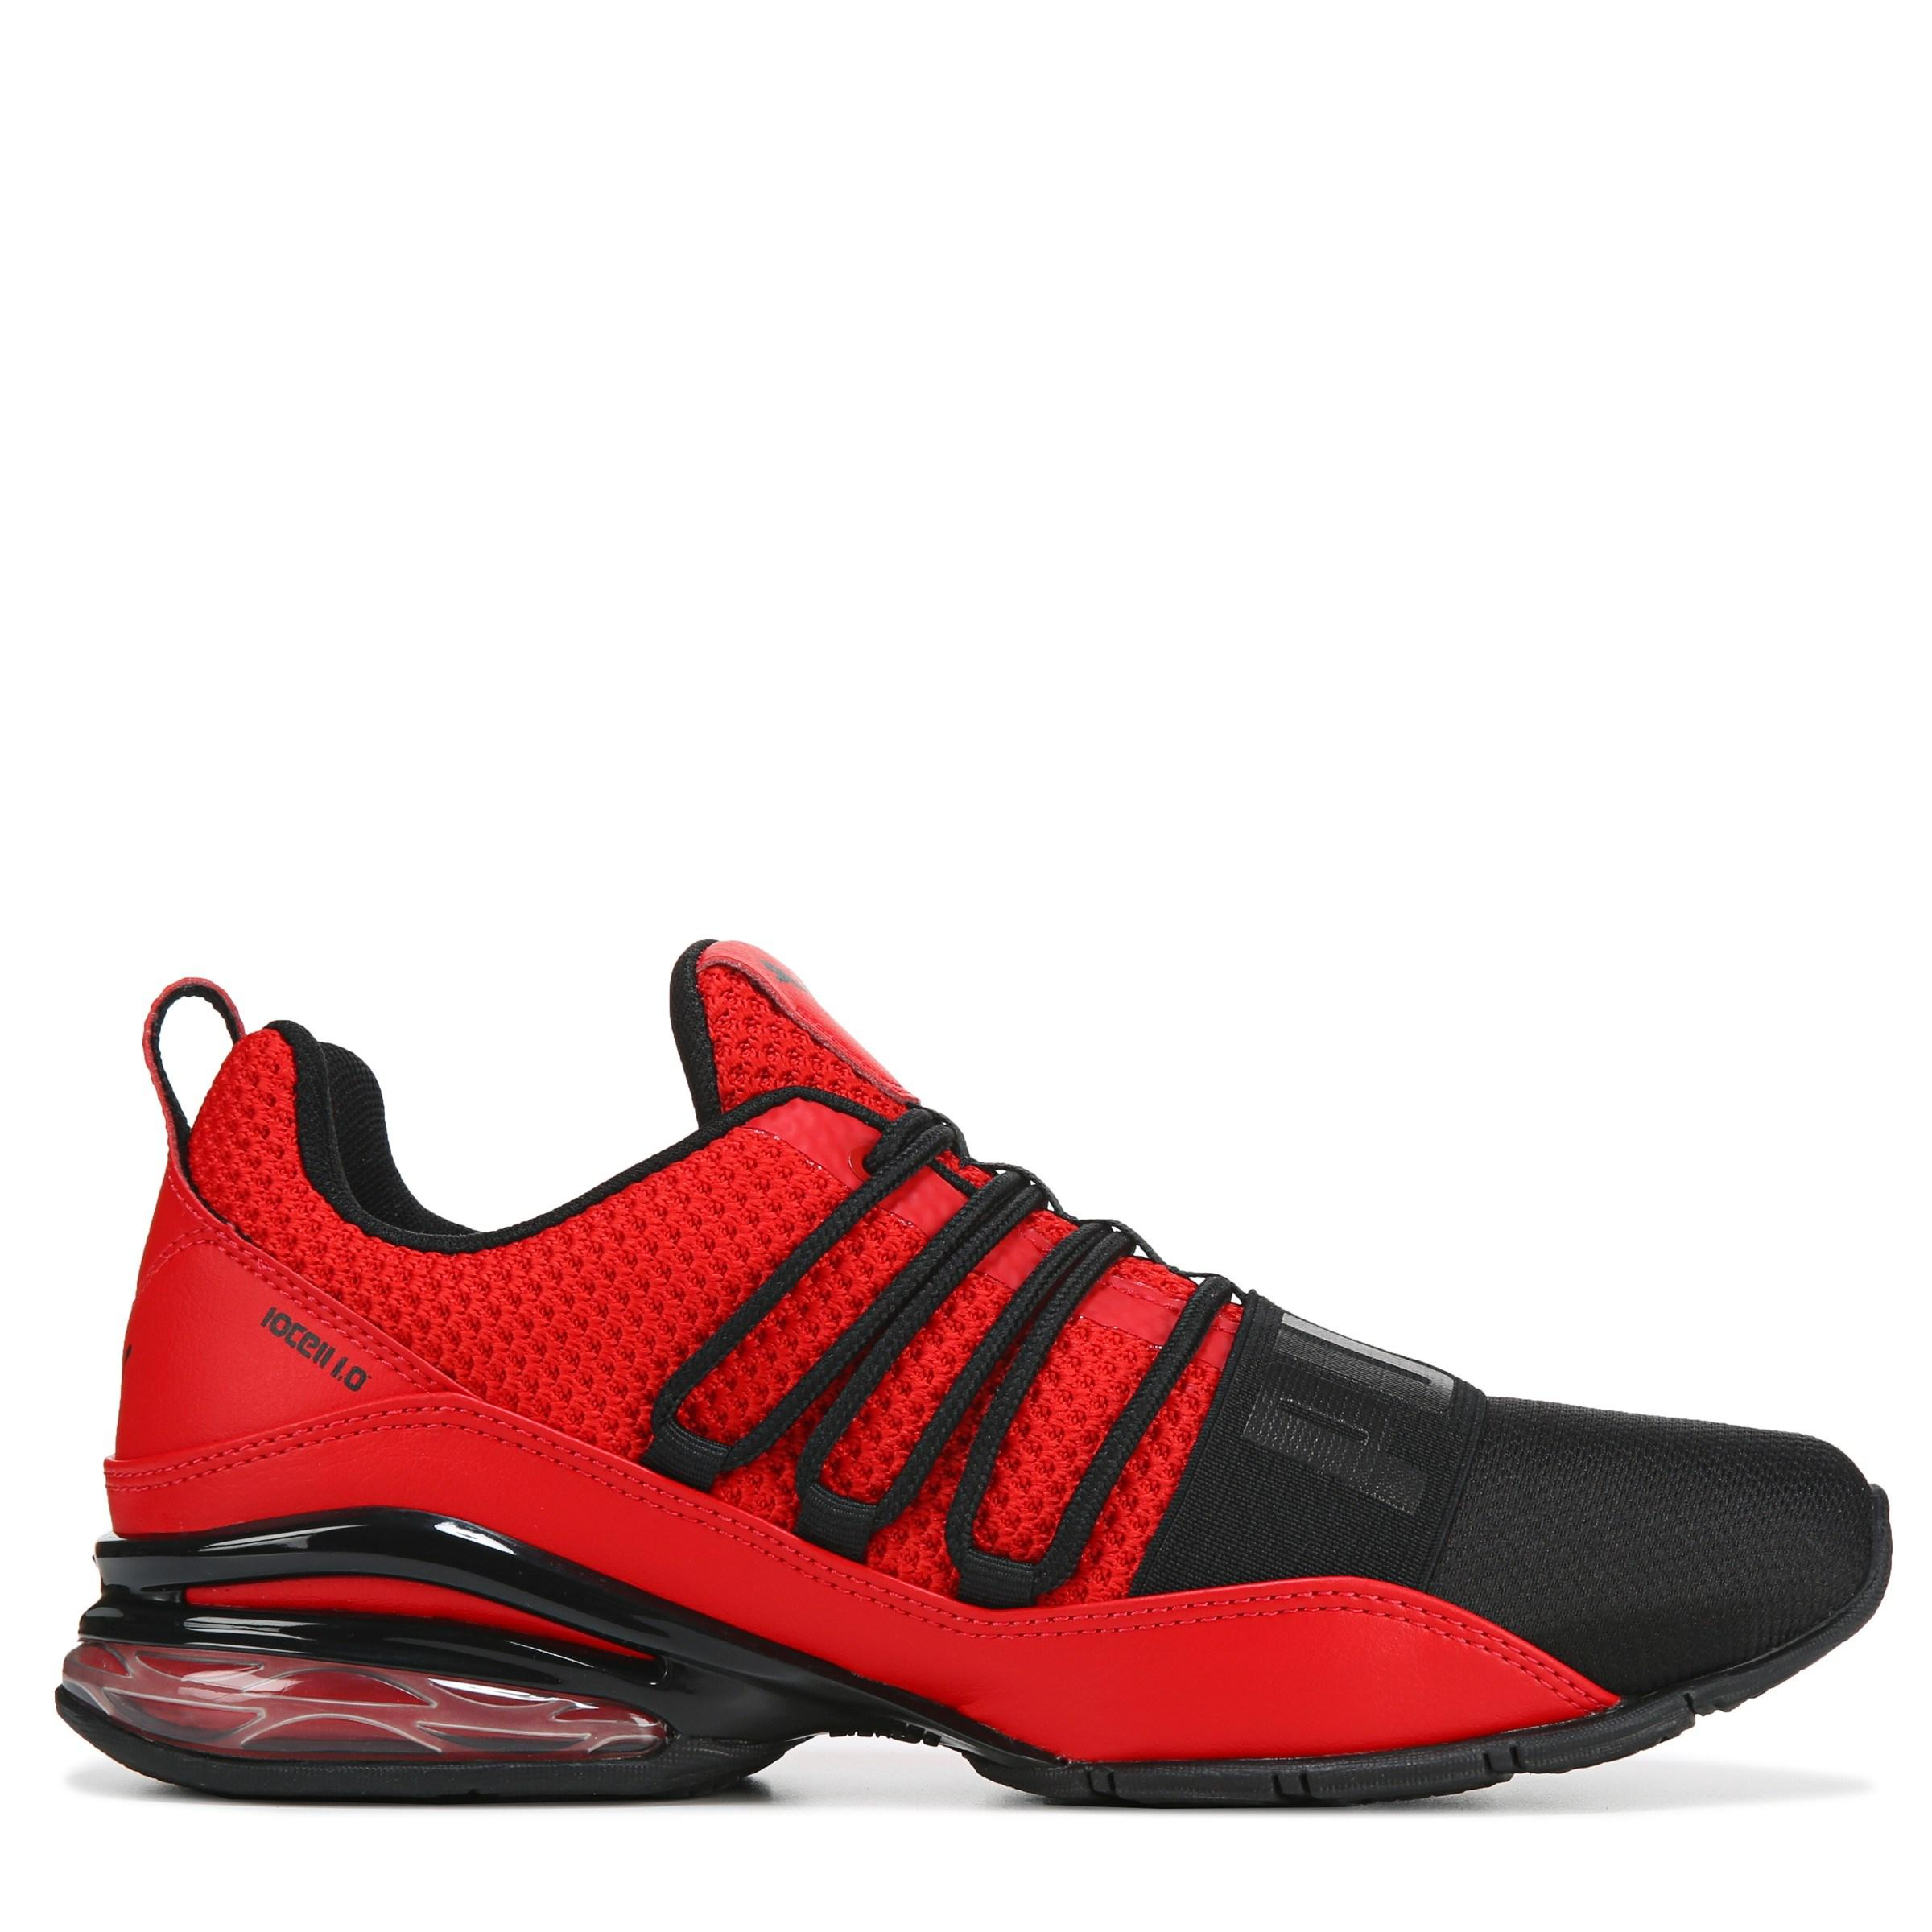 PUMA Synthetic Regulate Running Shoes